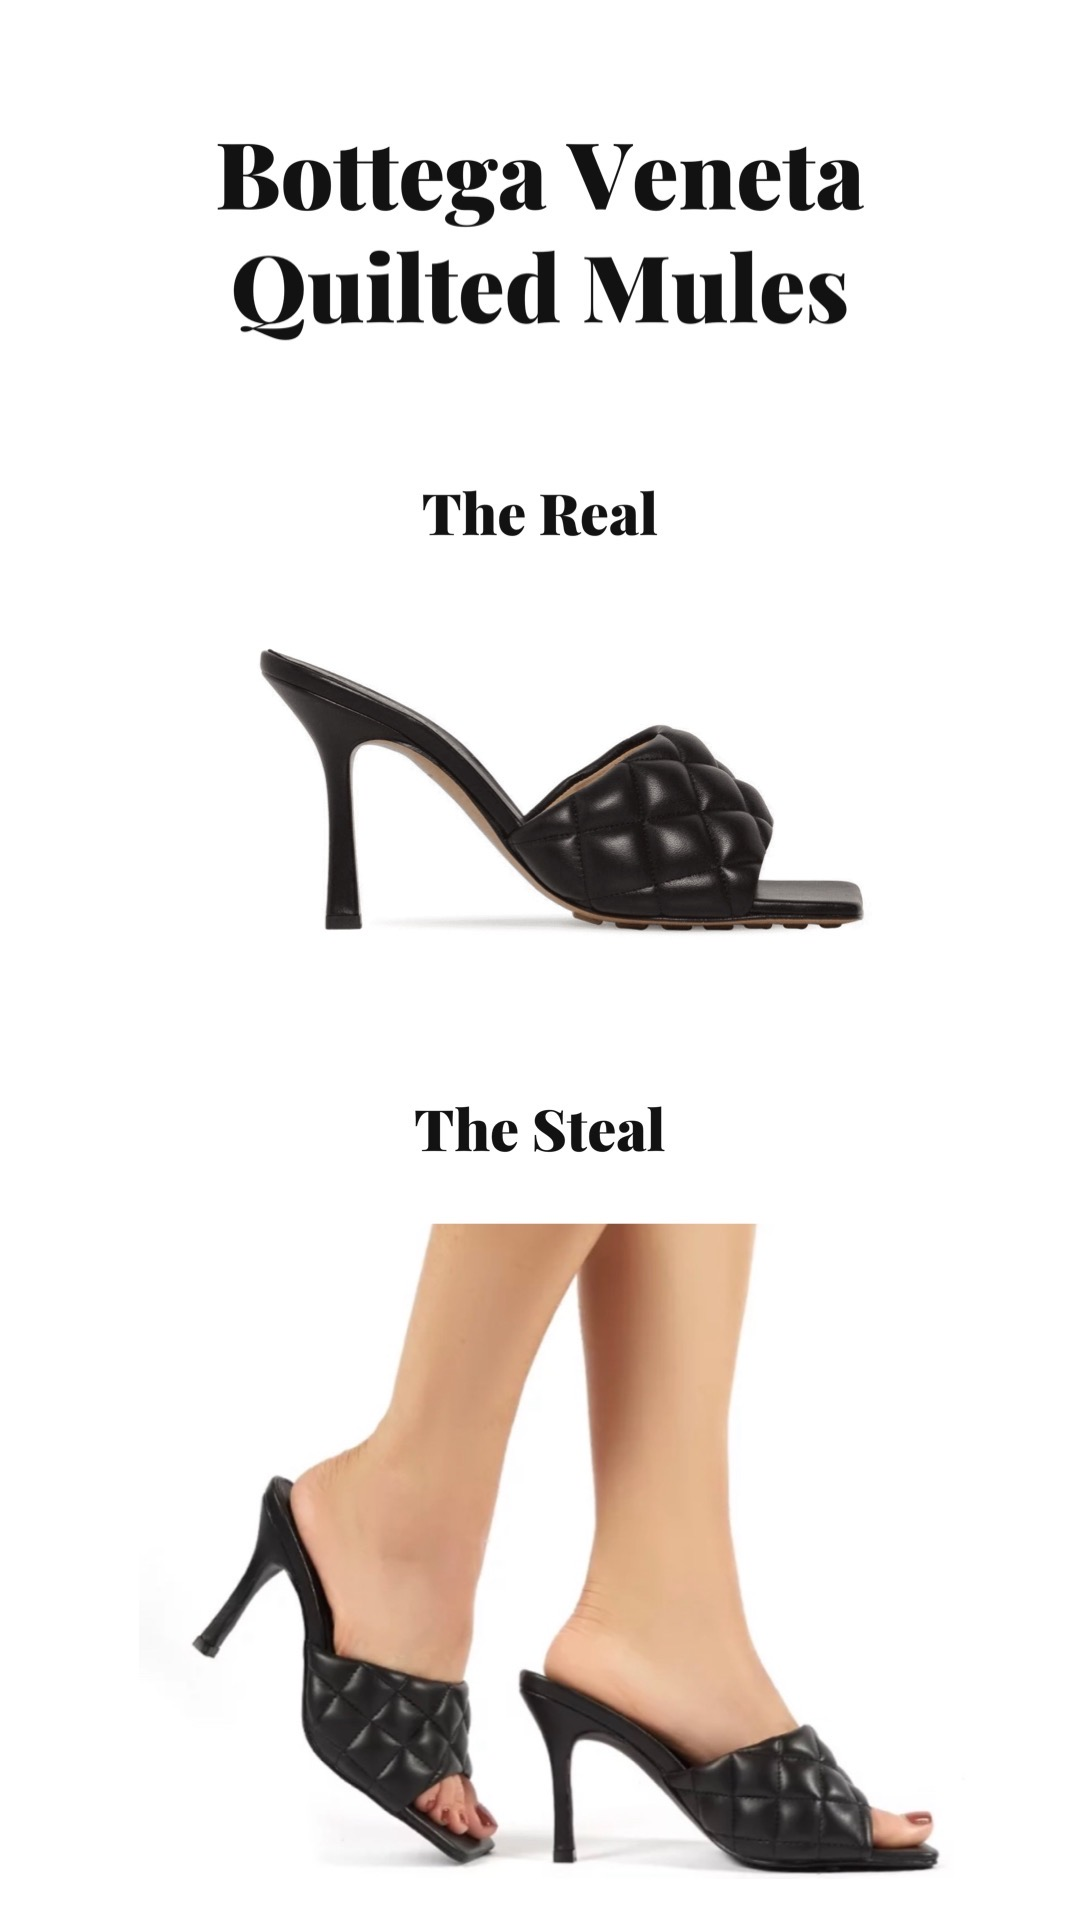 Bottega Veneta quilted mules: real versus steal. Selection of Bottega Veneta high heeled mules and Bottega Veneta dupes